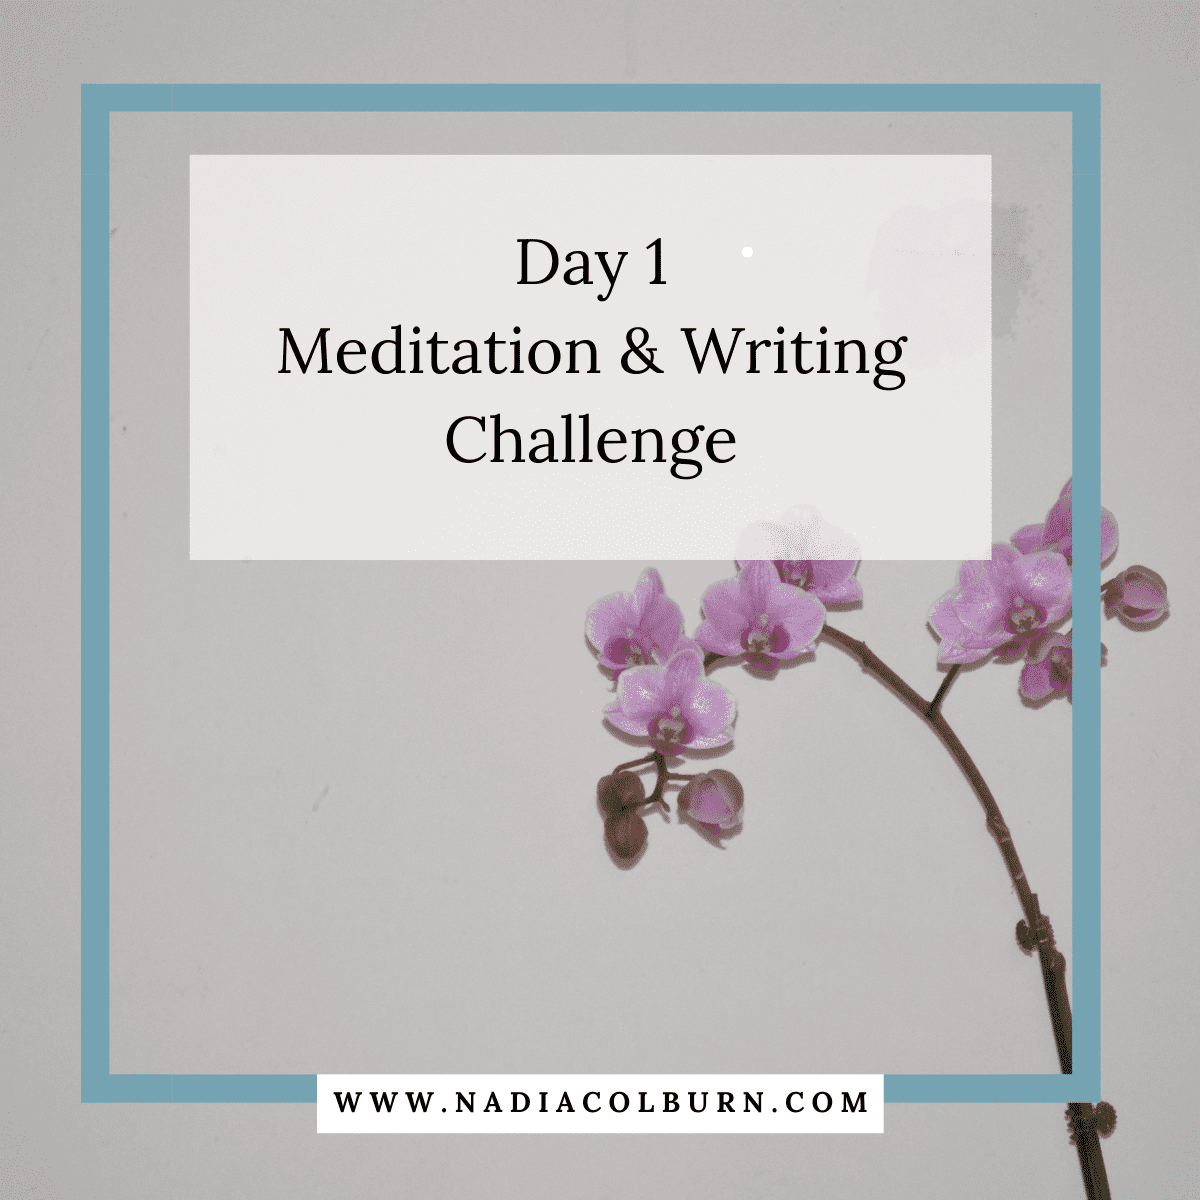 2021 Meditation and Writing Challenge Day 1 5